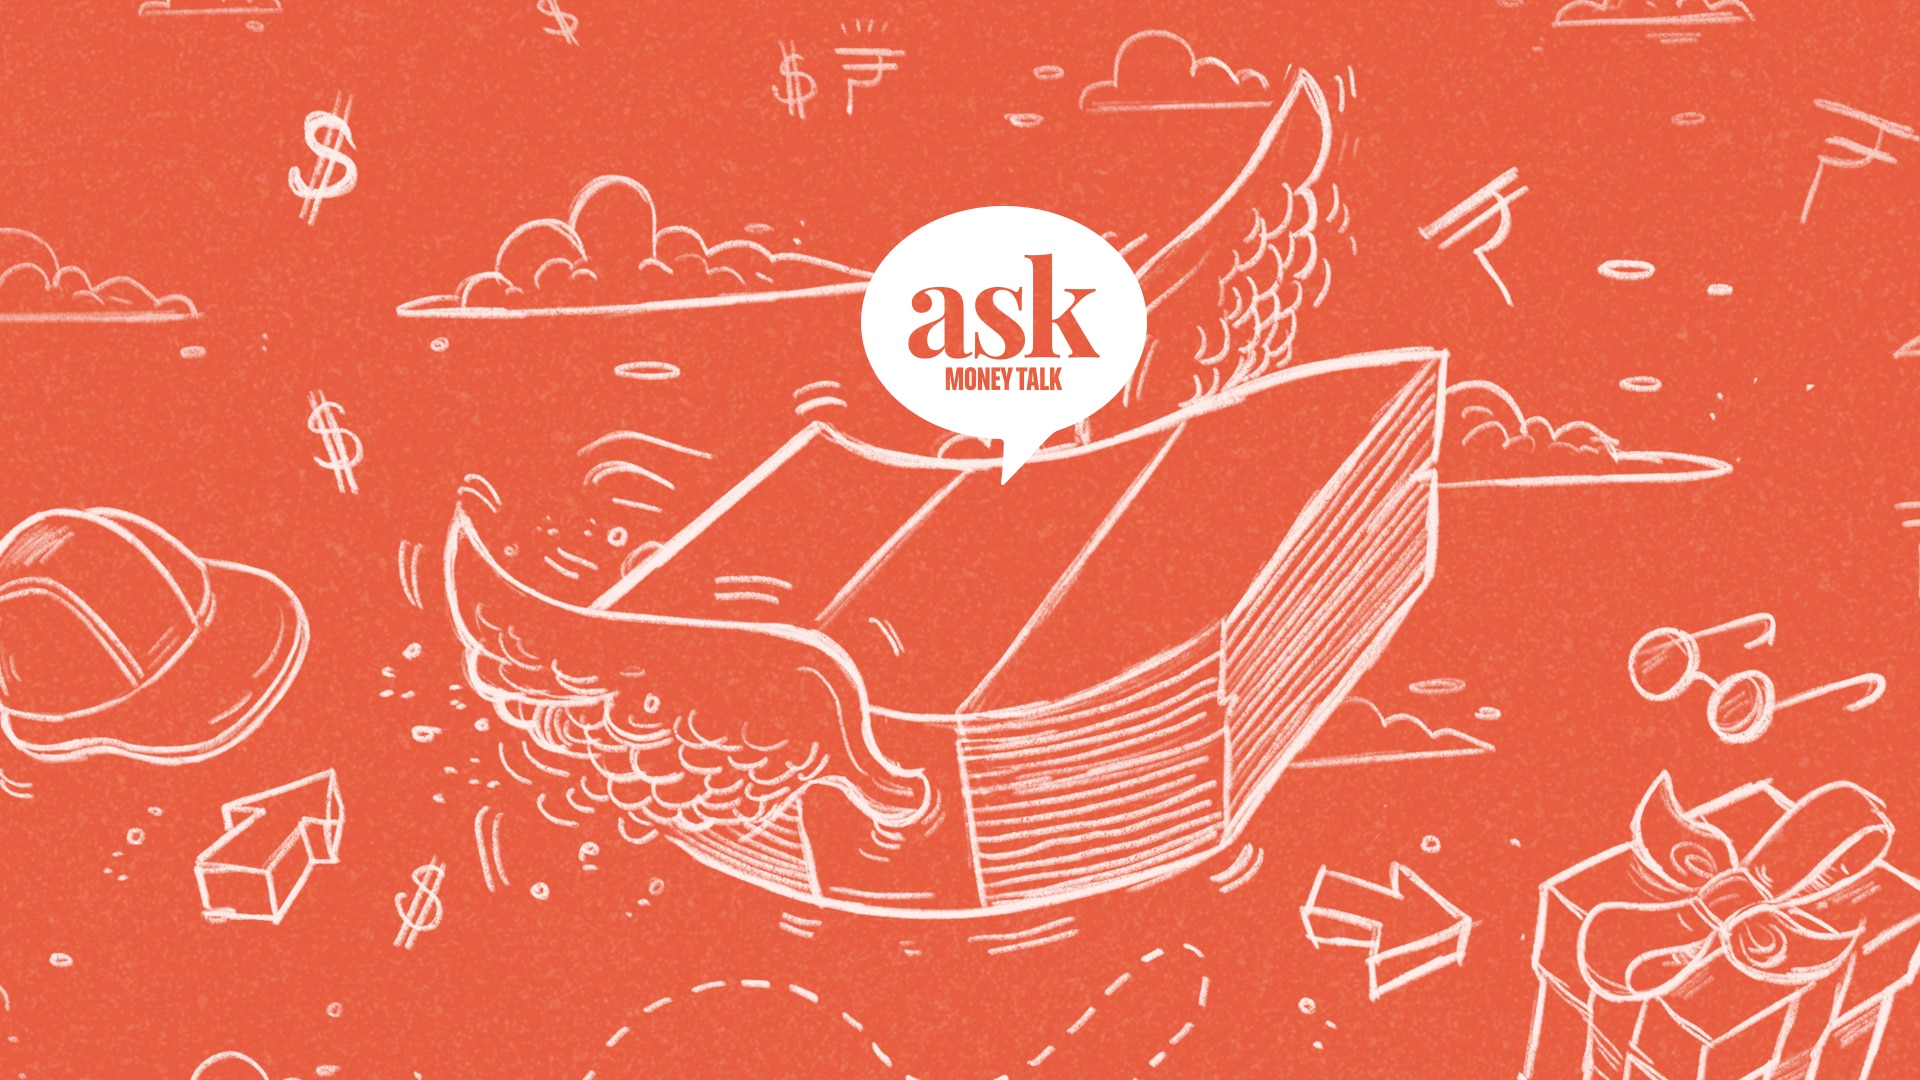 An Illustration of a stash of money with wings with askmoneytalk logo